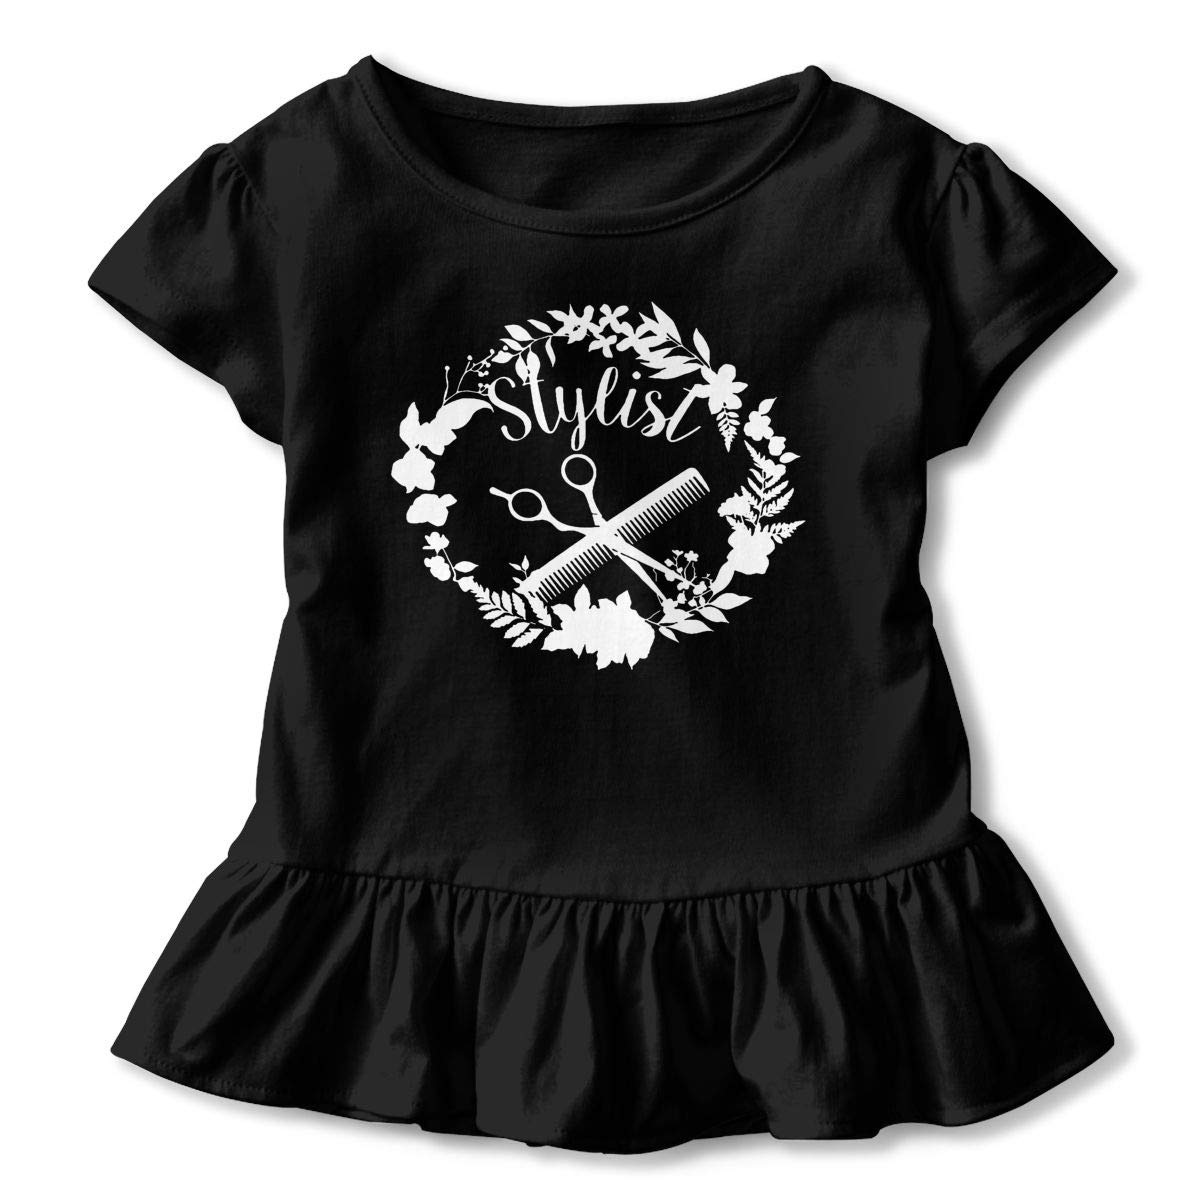 QUZtww Louise Morrison Hair Stylist Toddler Baby Girl Basic Printed Ruffle Short Sleeve Cotton T Shirts Tops Tee Clothes Black